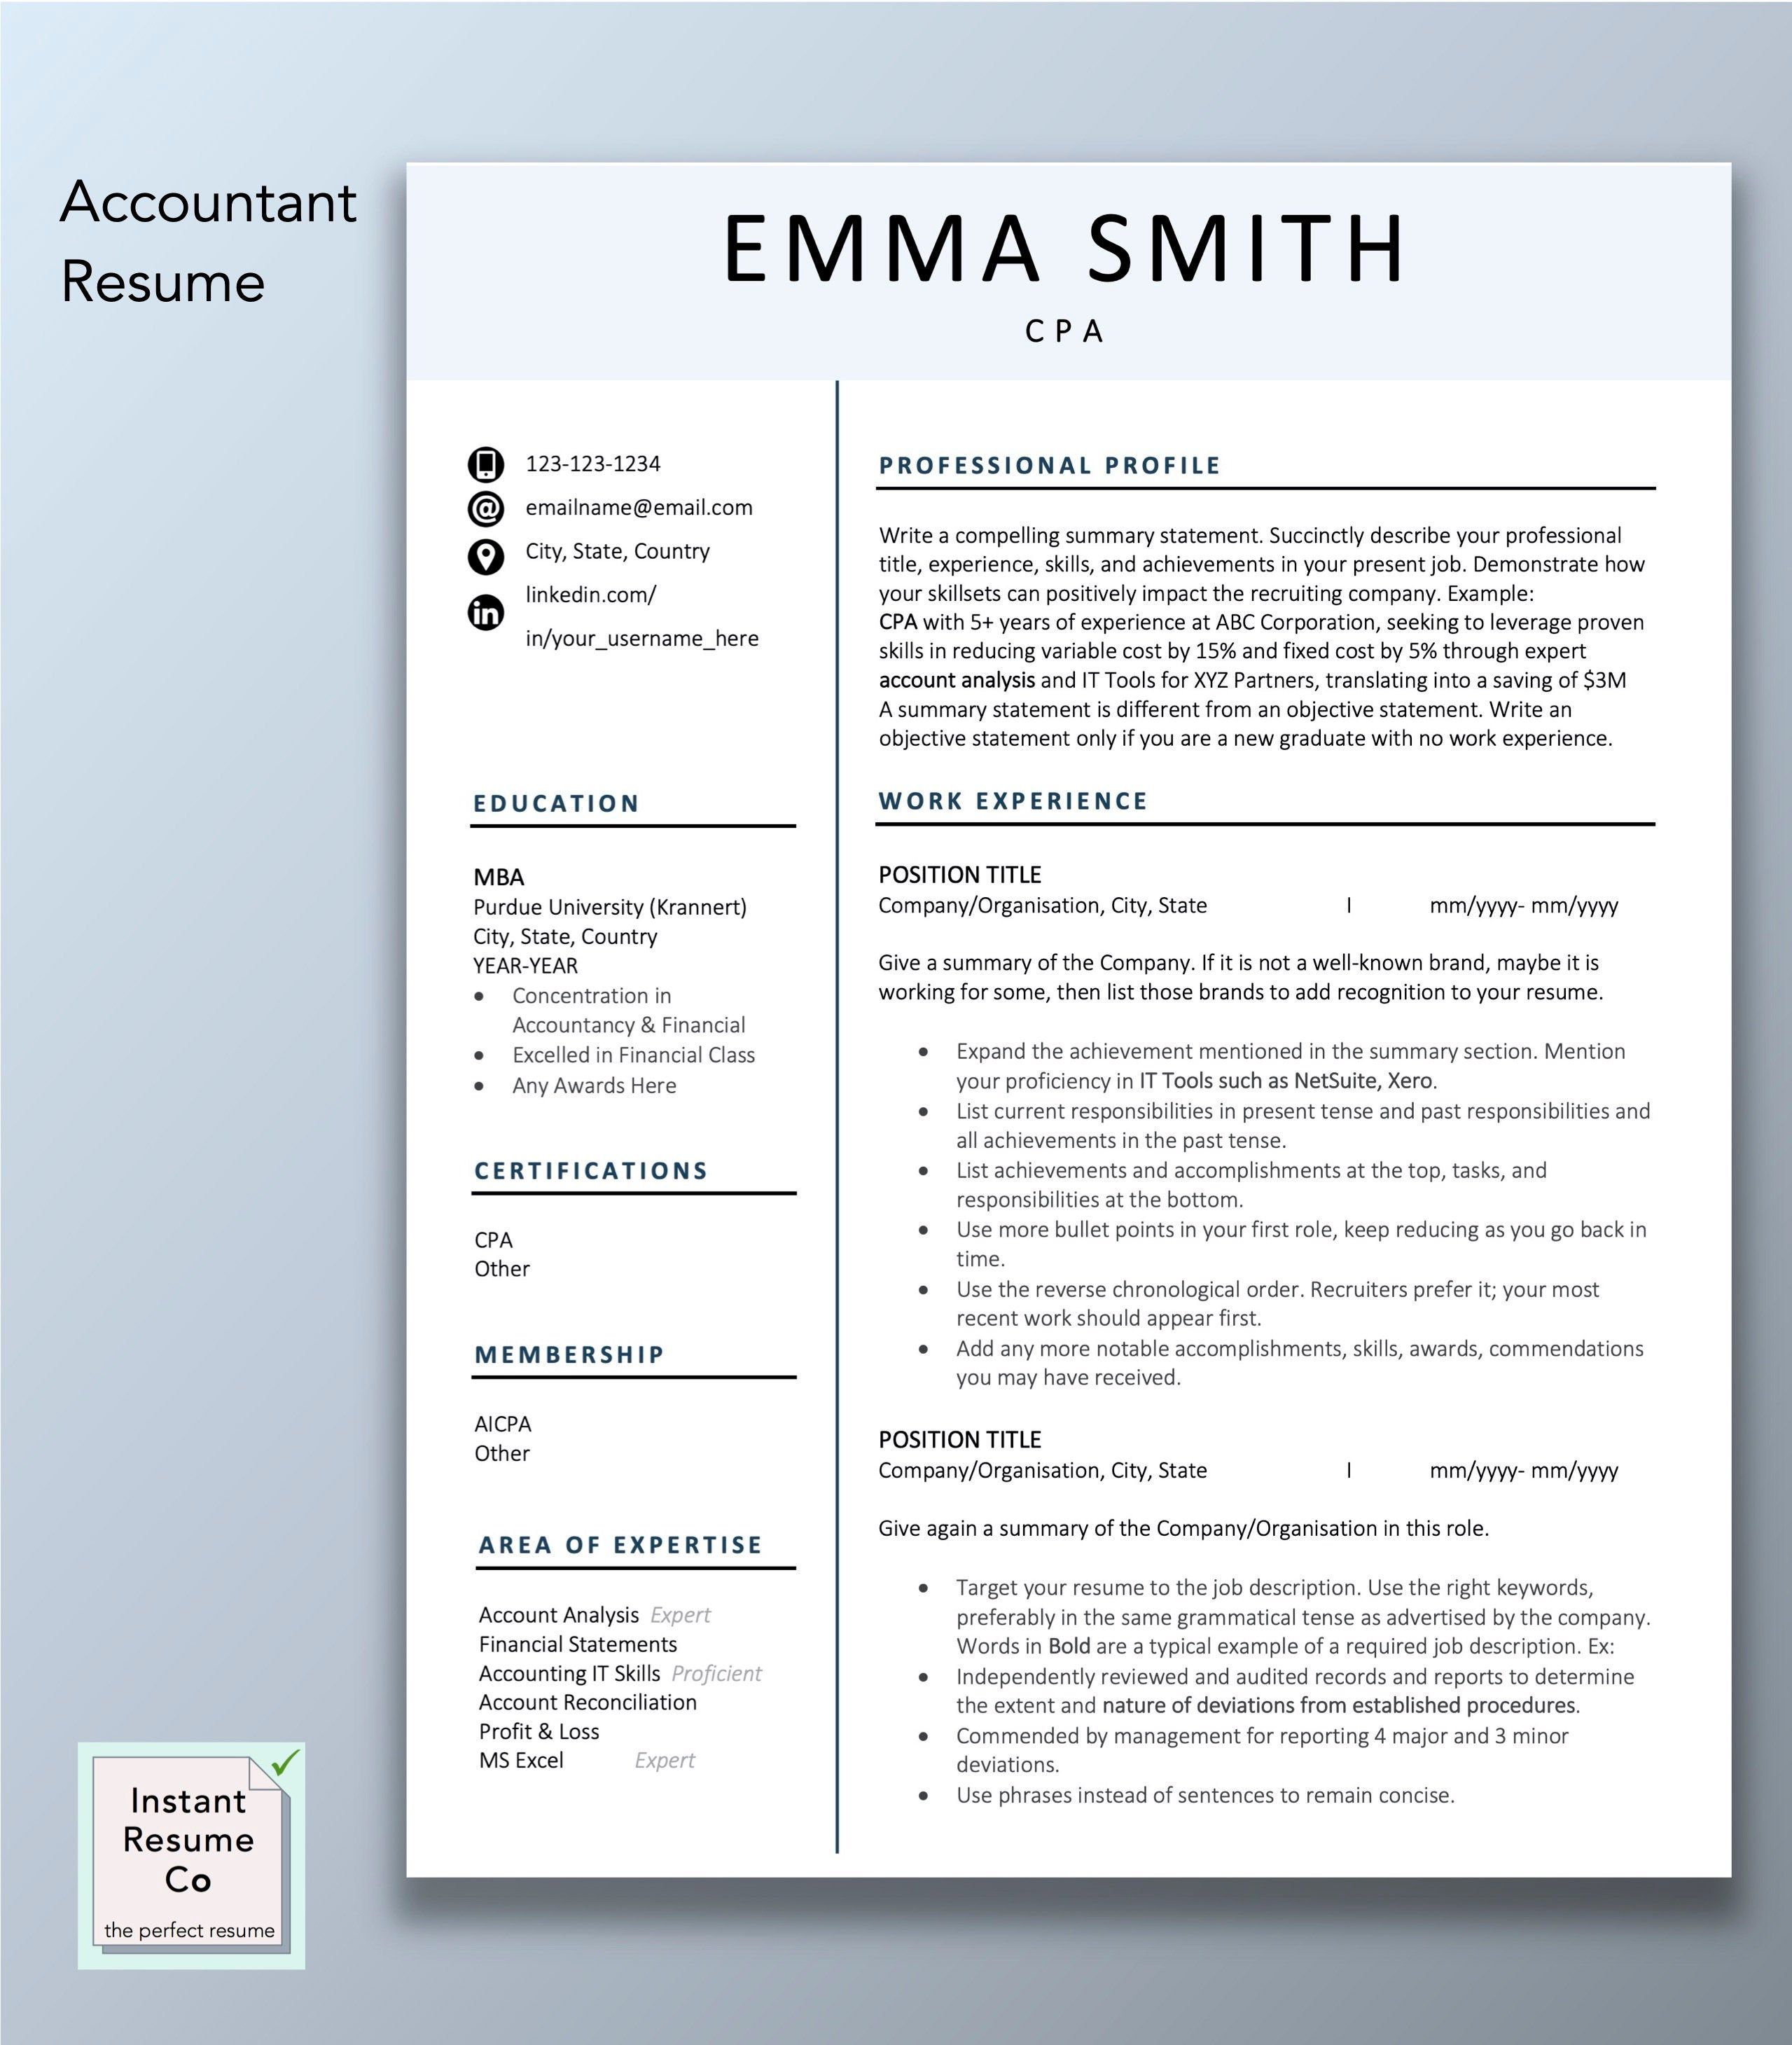 Accountant Resume Cpa Professional Resume Template Creative Etsy Accountant Resume Resume Resume Template Professional